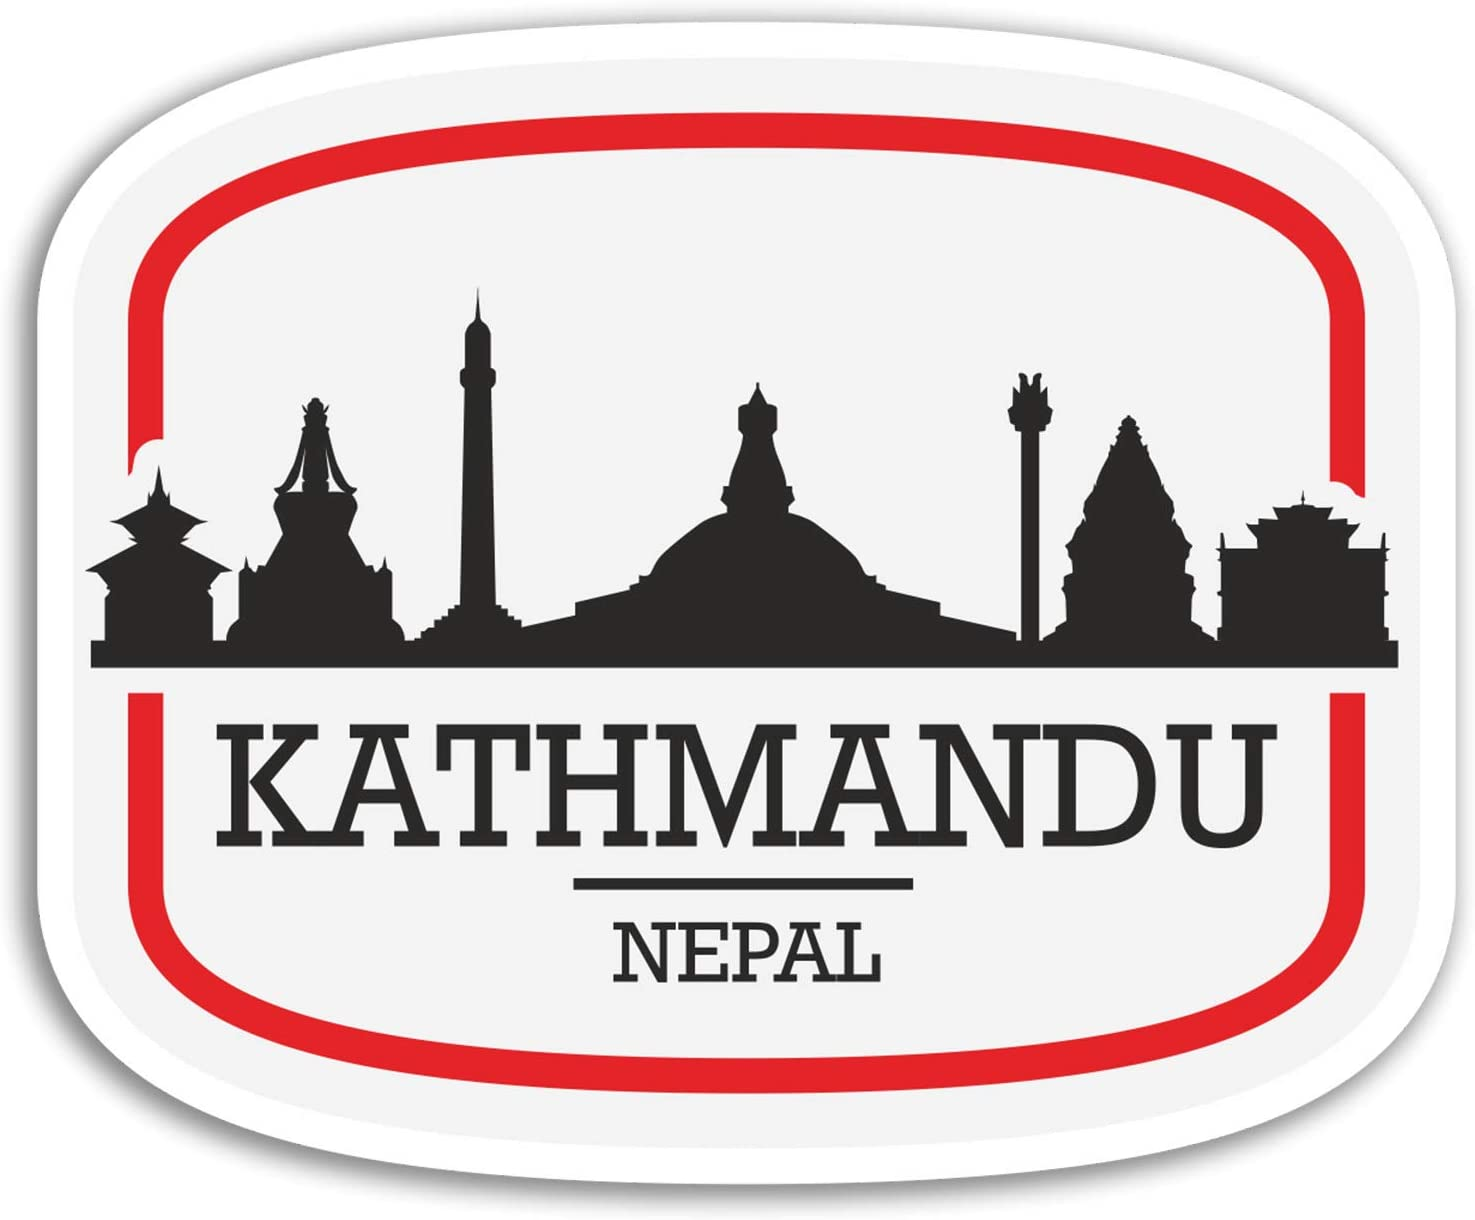 2 x 10cm Kathmandu Nepal Vinyl Stickers - Travel Sticker Laptop Luggage #17101 (10cm Wide)